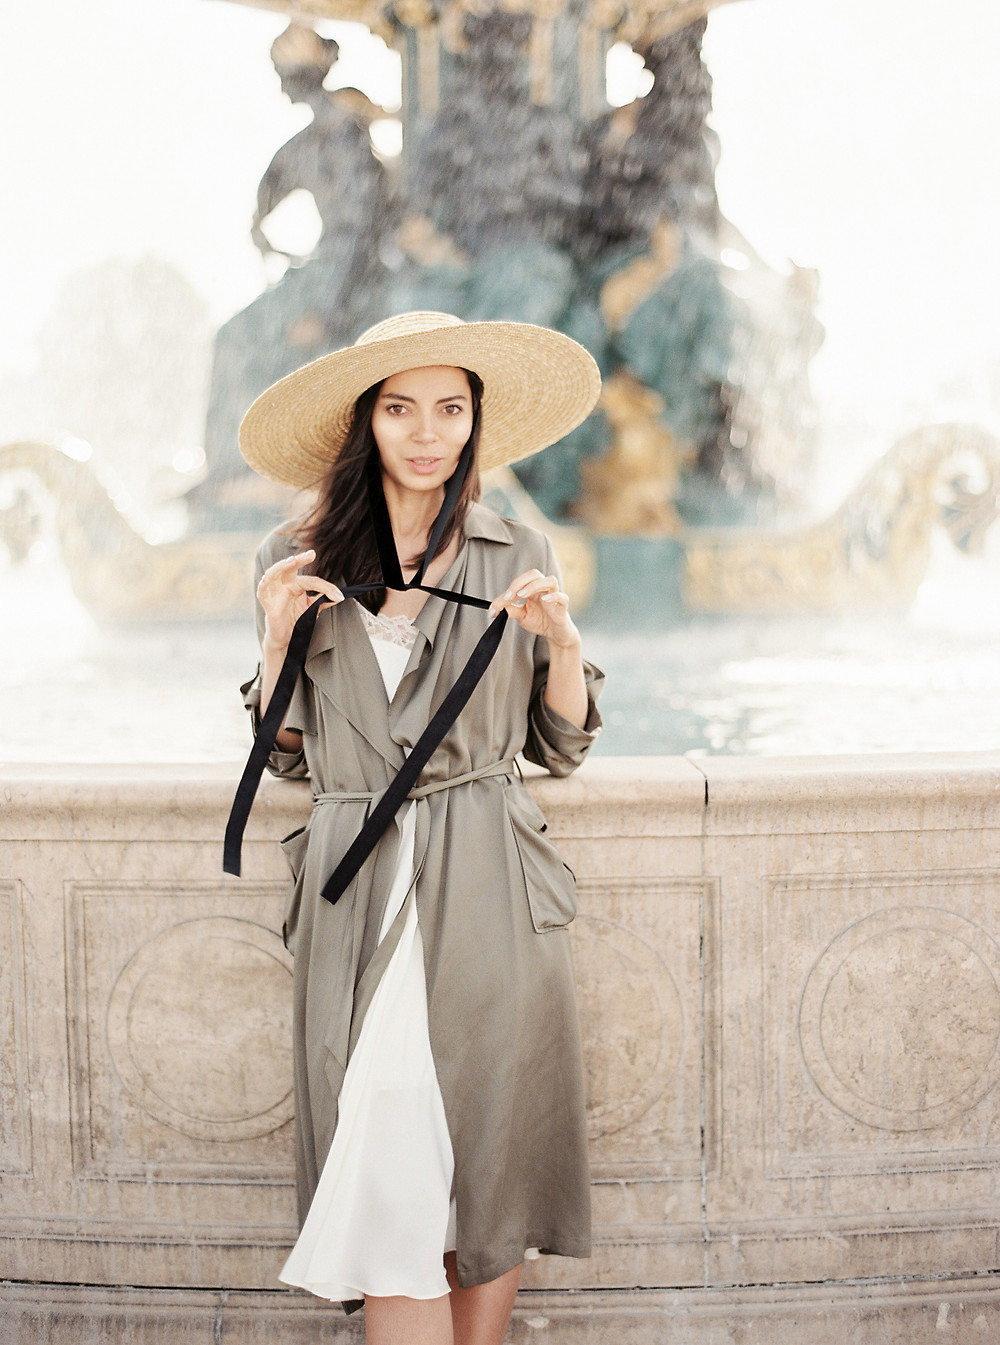 girl in white dress with trench-coat and hat at the fountain in Paris